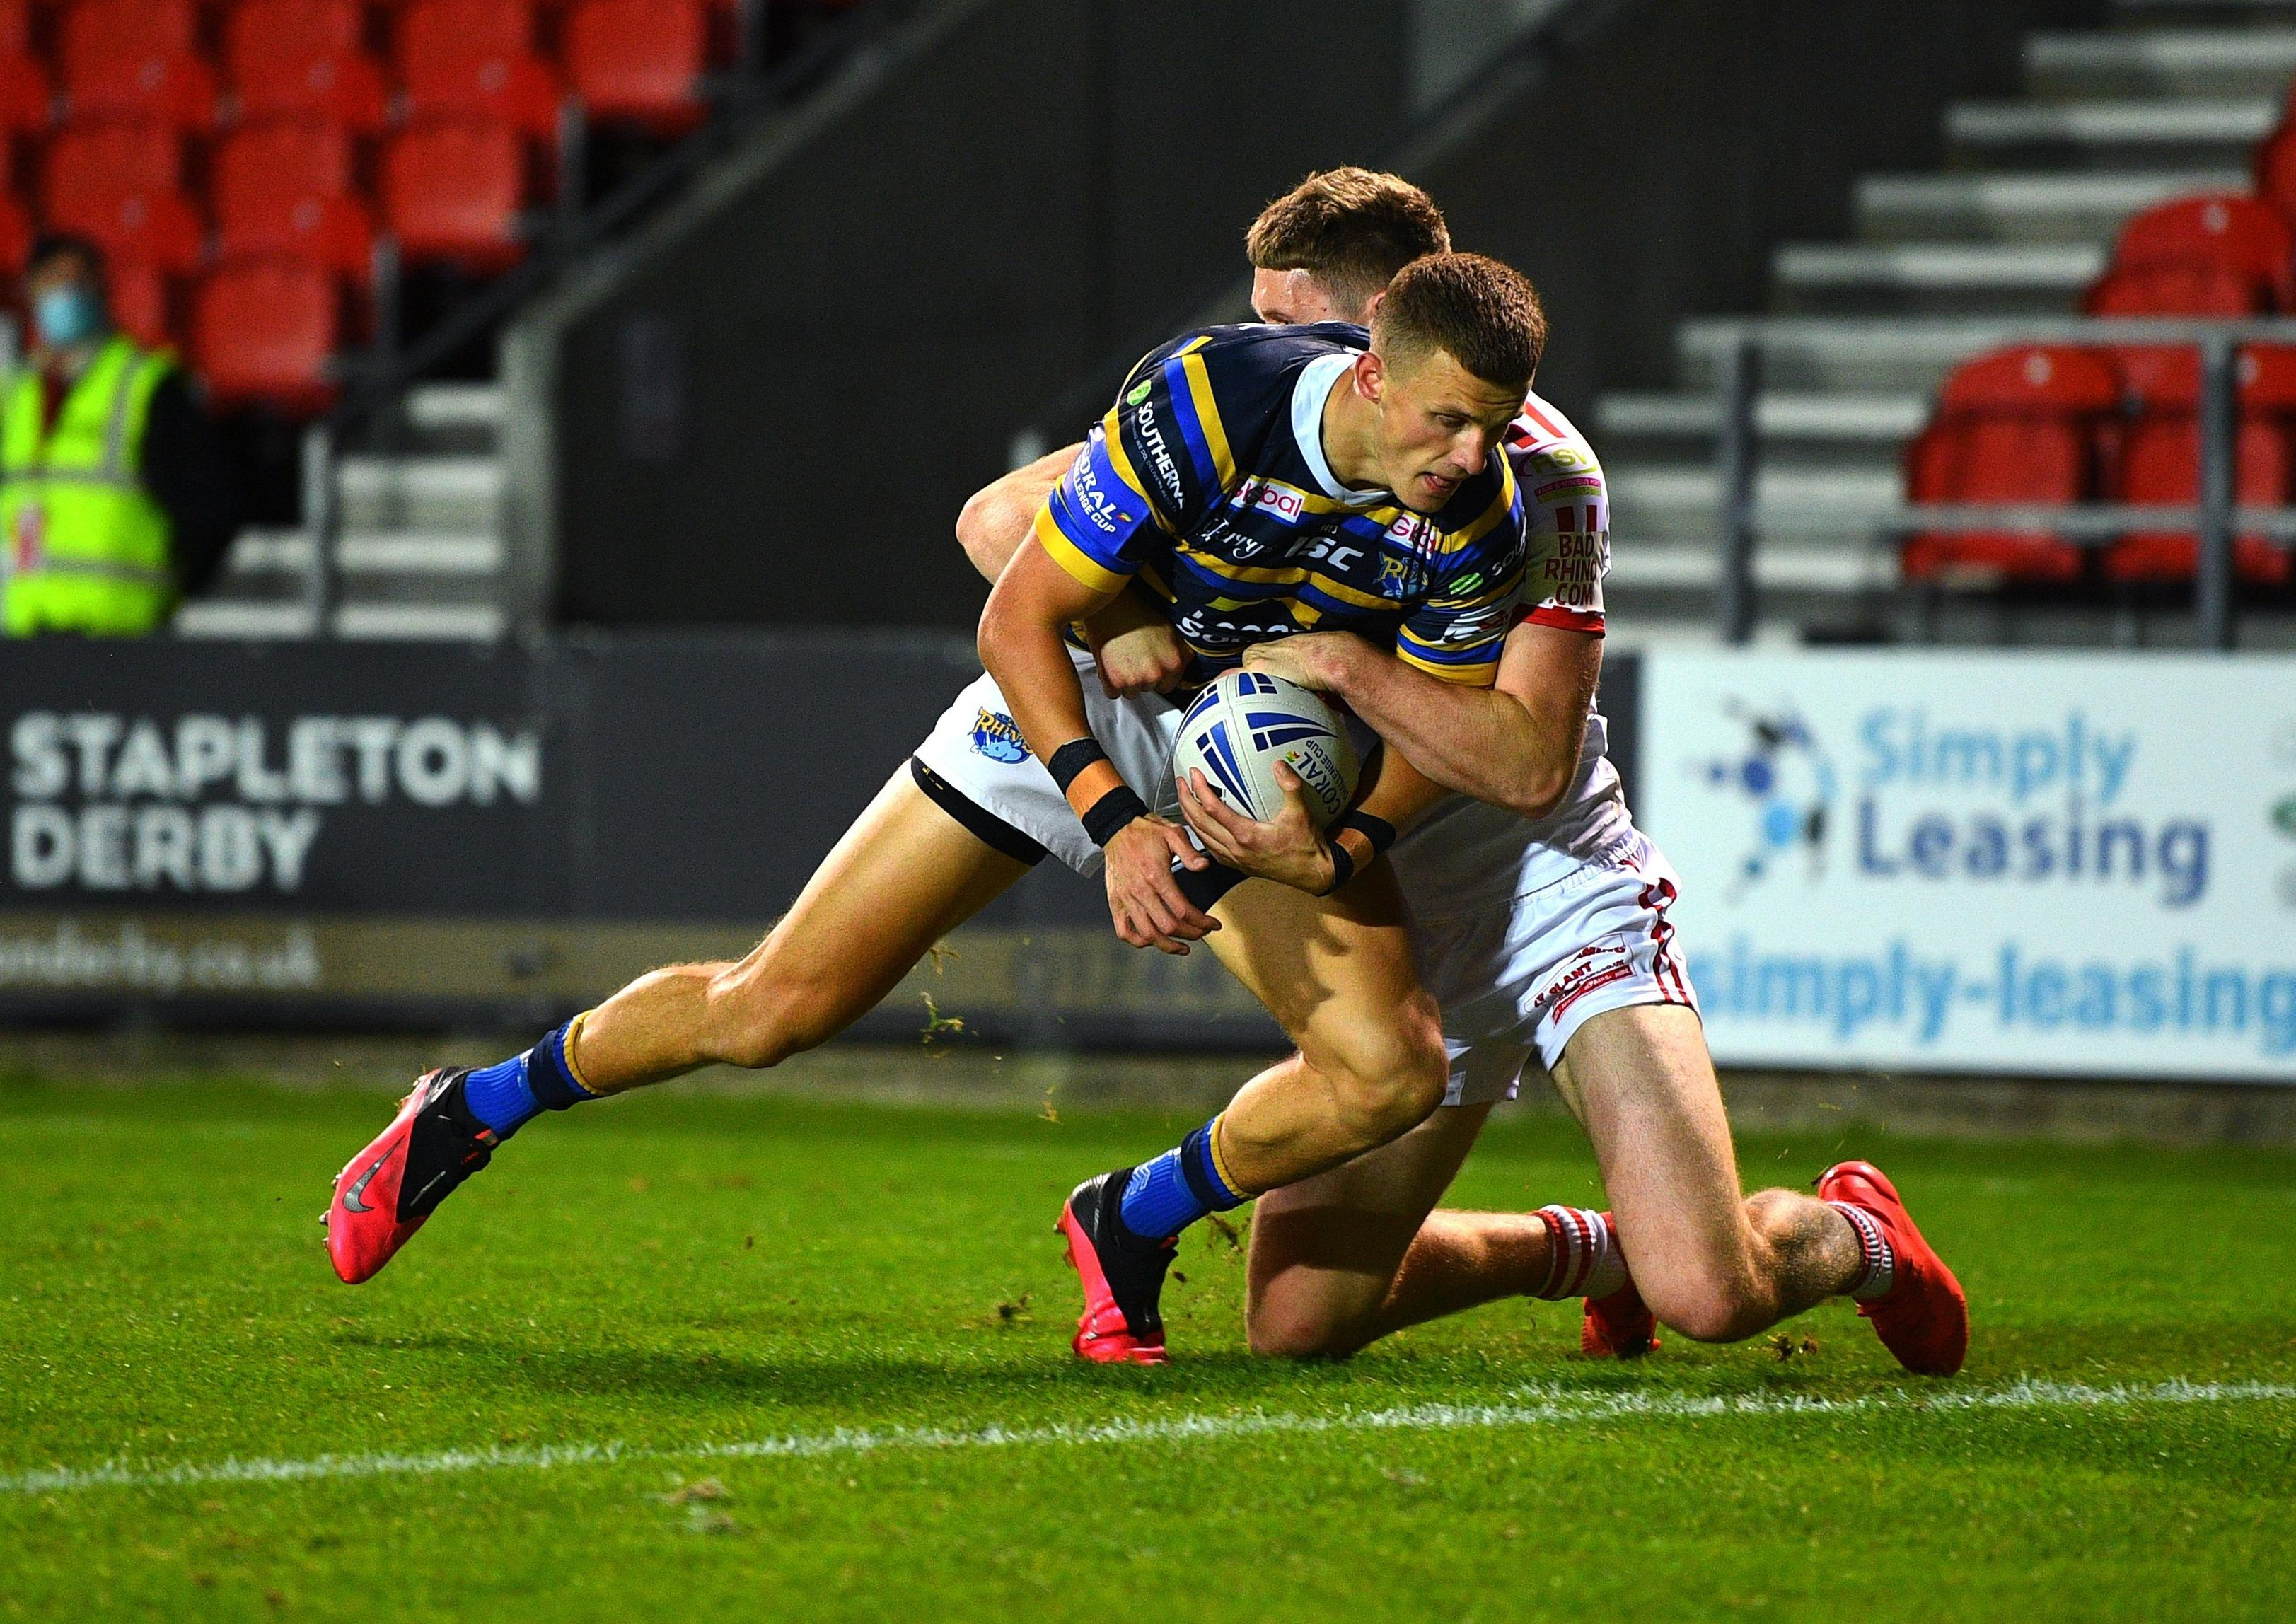 Leeds Rhinos 48 - Hull KR 18: Rampant Rhinos score eight tries as they power into Challenge Cup semi-finals